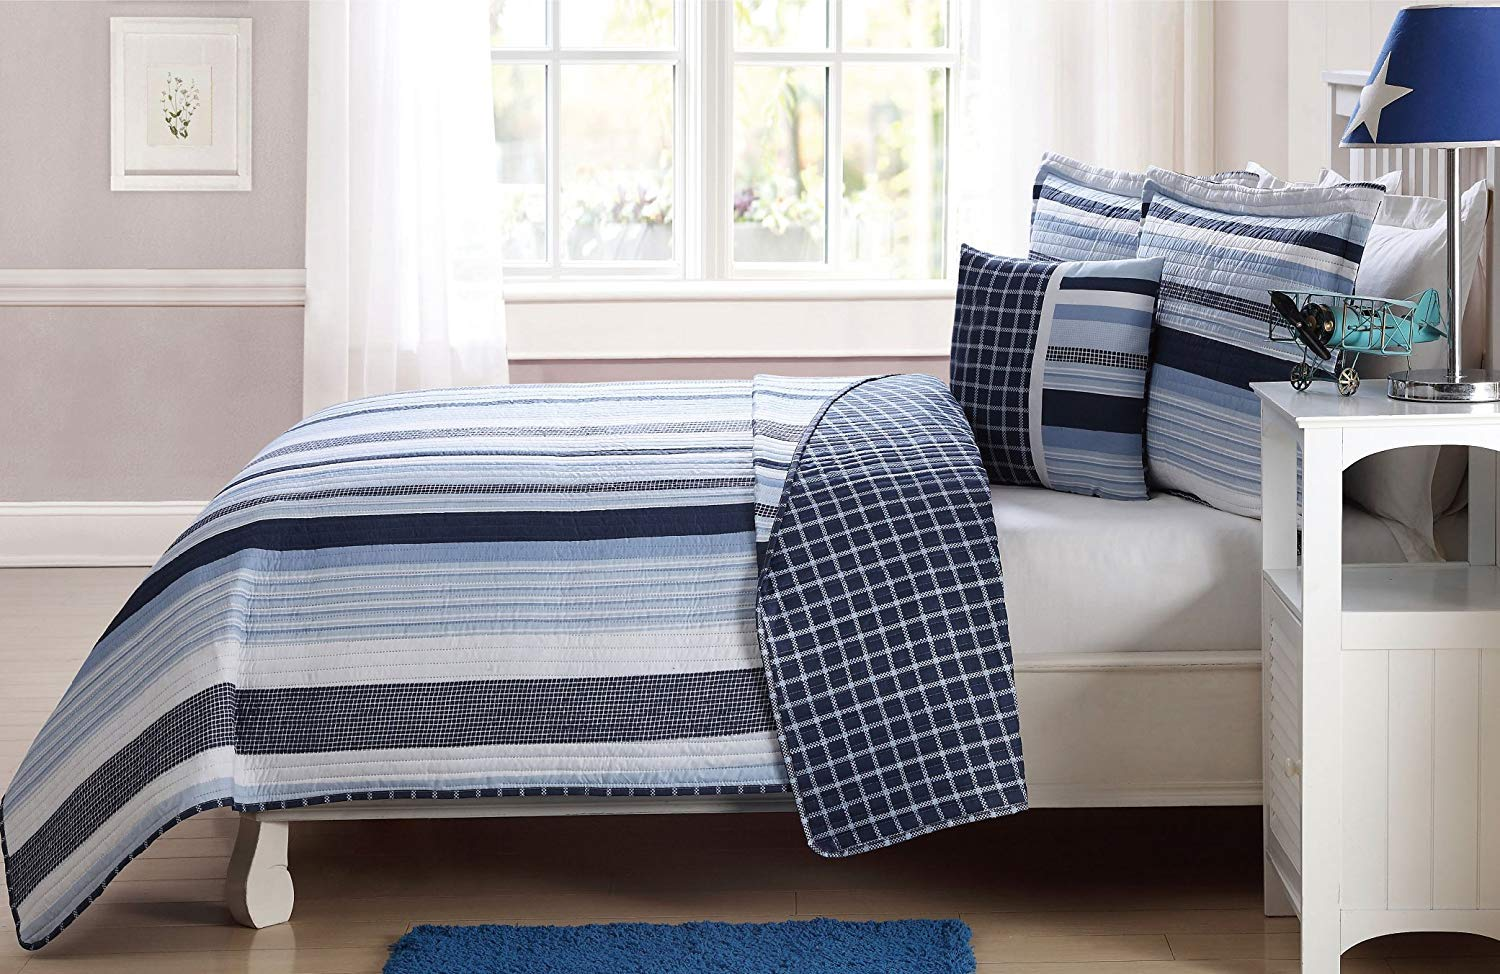 Sapphire Home 5pc Kids Teens Twin Bedspread Quilt Set with Matching Curtains Panels 84'' Length, Blue Navy White Elegant Stripes Coverlet for Boys, Twin Blue Stripes Quilt